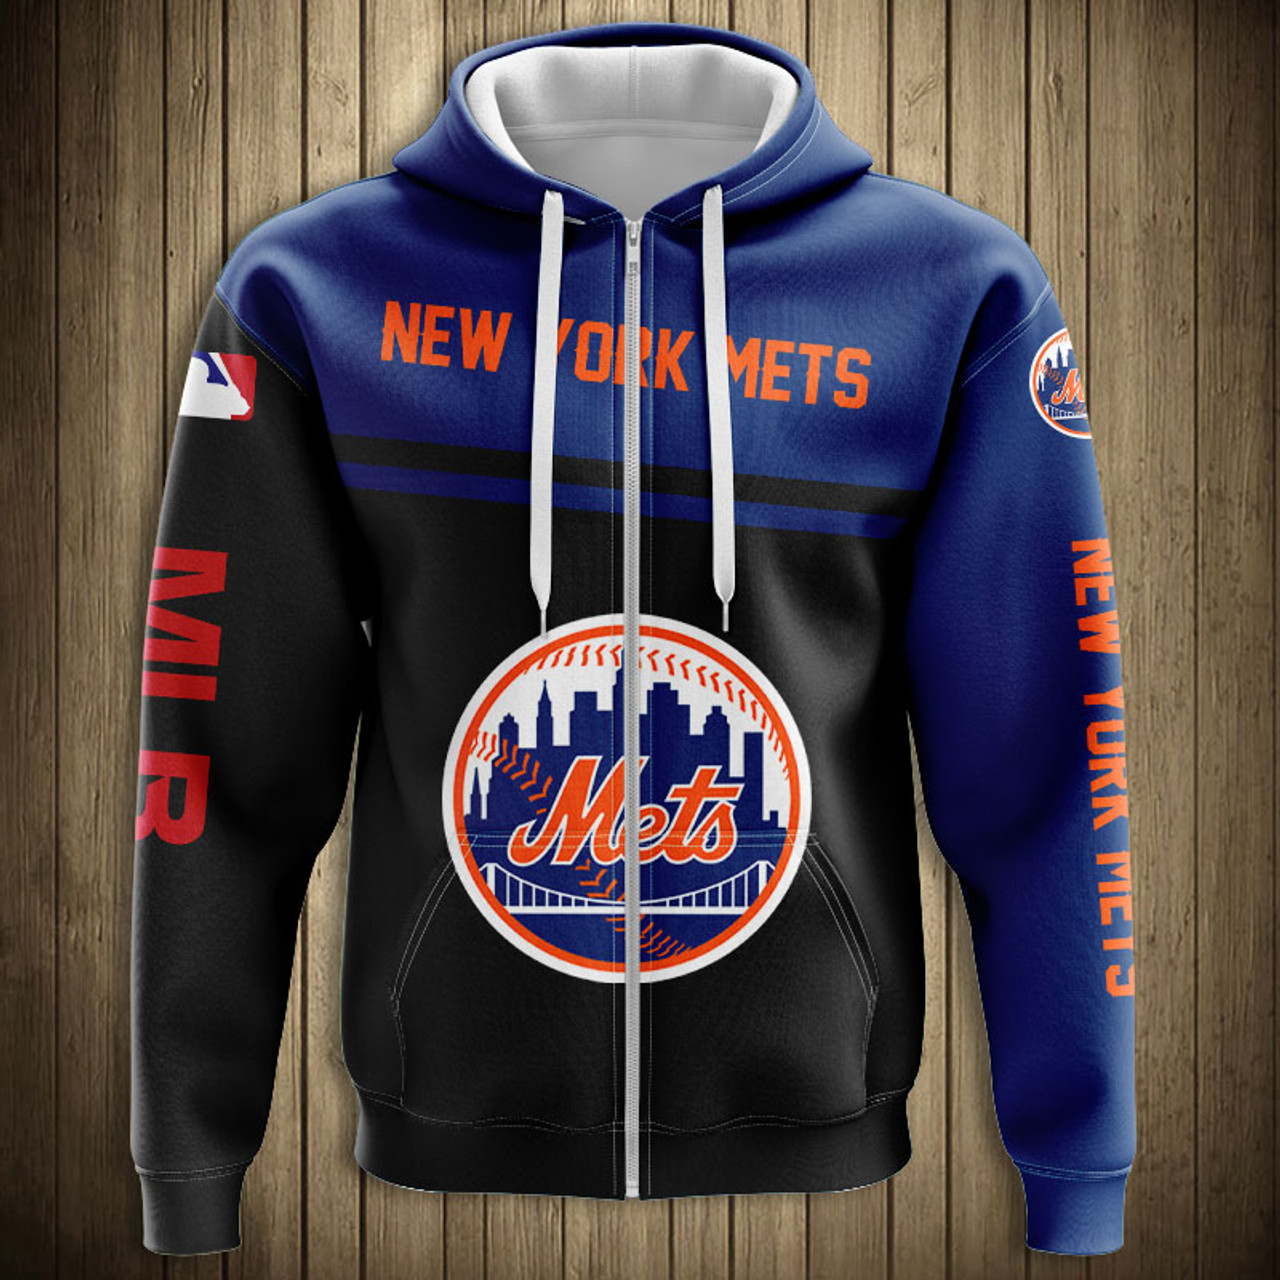 new concept 0041c 8d309 **(OFFICIAL-M.L.B.NEW-YORK-METS-TEAM-ZIPPERED-HOODIES/NICE-CUSTOM-DETAILED-3D-GRAPHIC-PRINTED/PREMIUM-ALL-OVER-DOUBLE-SIDED-PRINT/OFFICIAL-METS-TEAM-C...